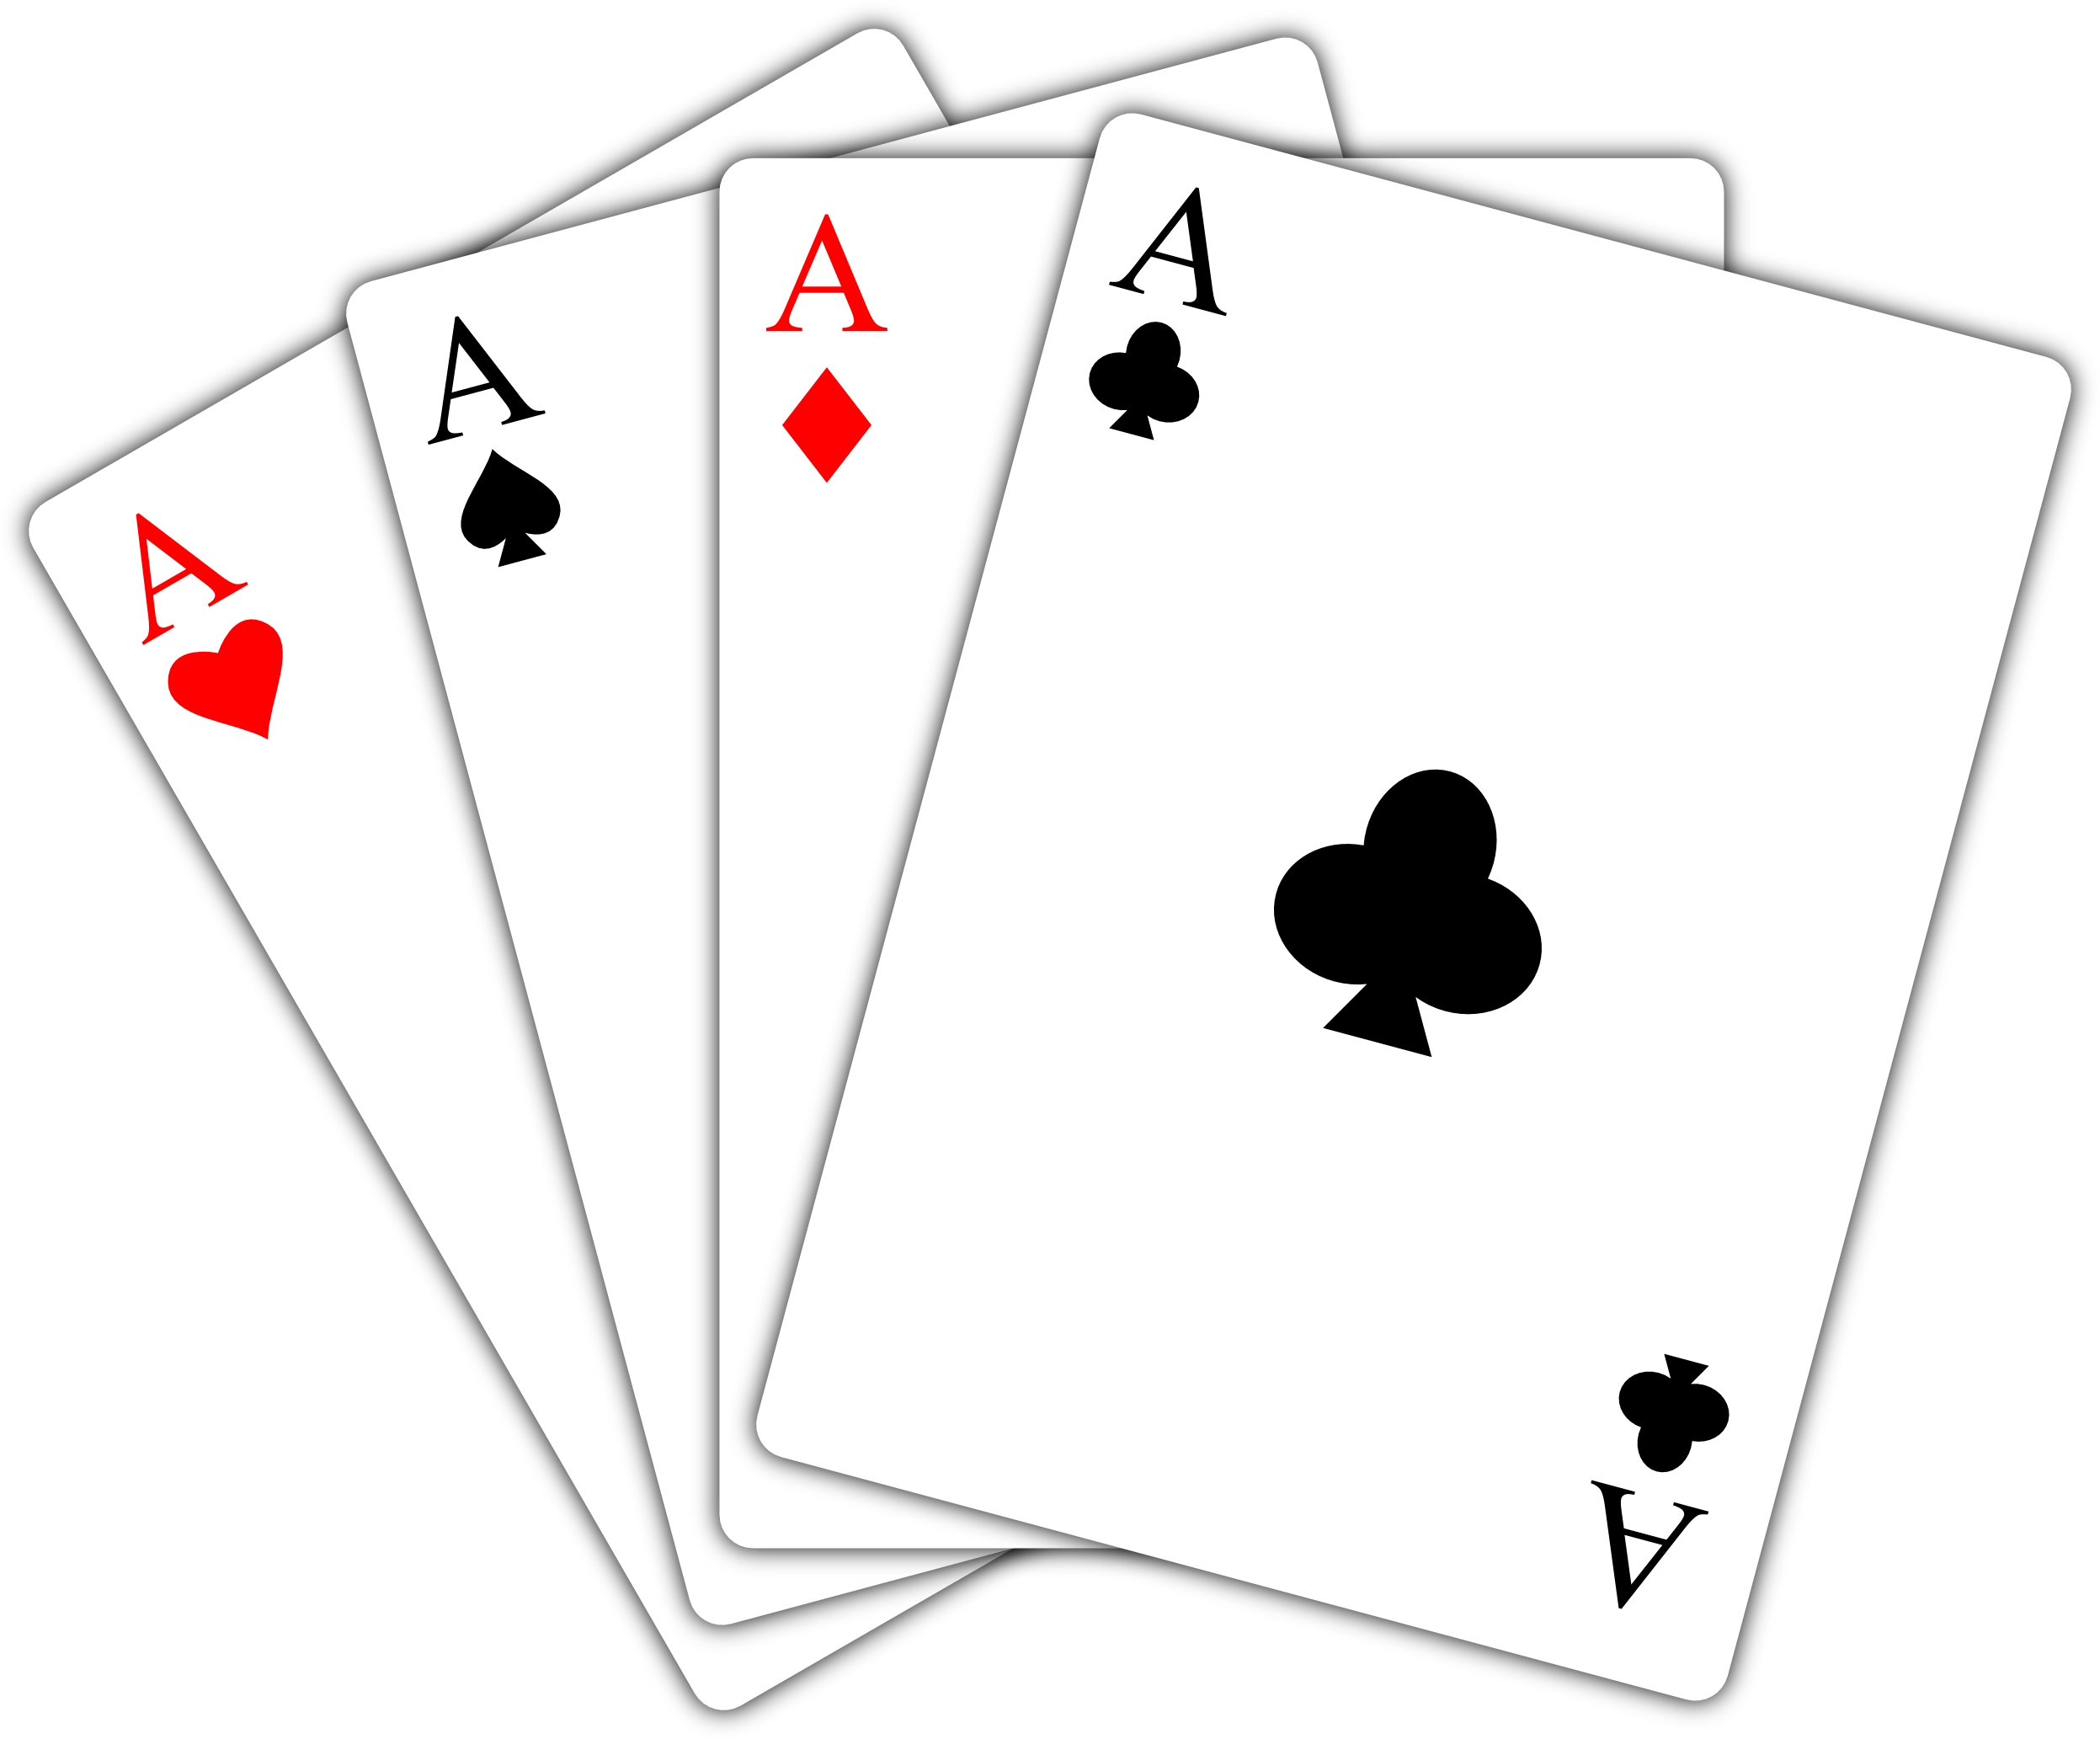 Black And White Playing Cards Clipart - Clipart Kid